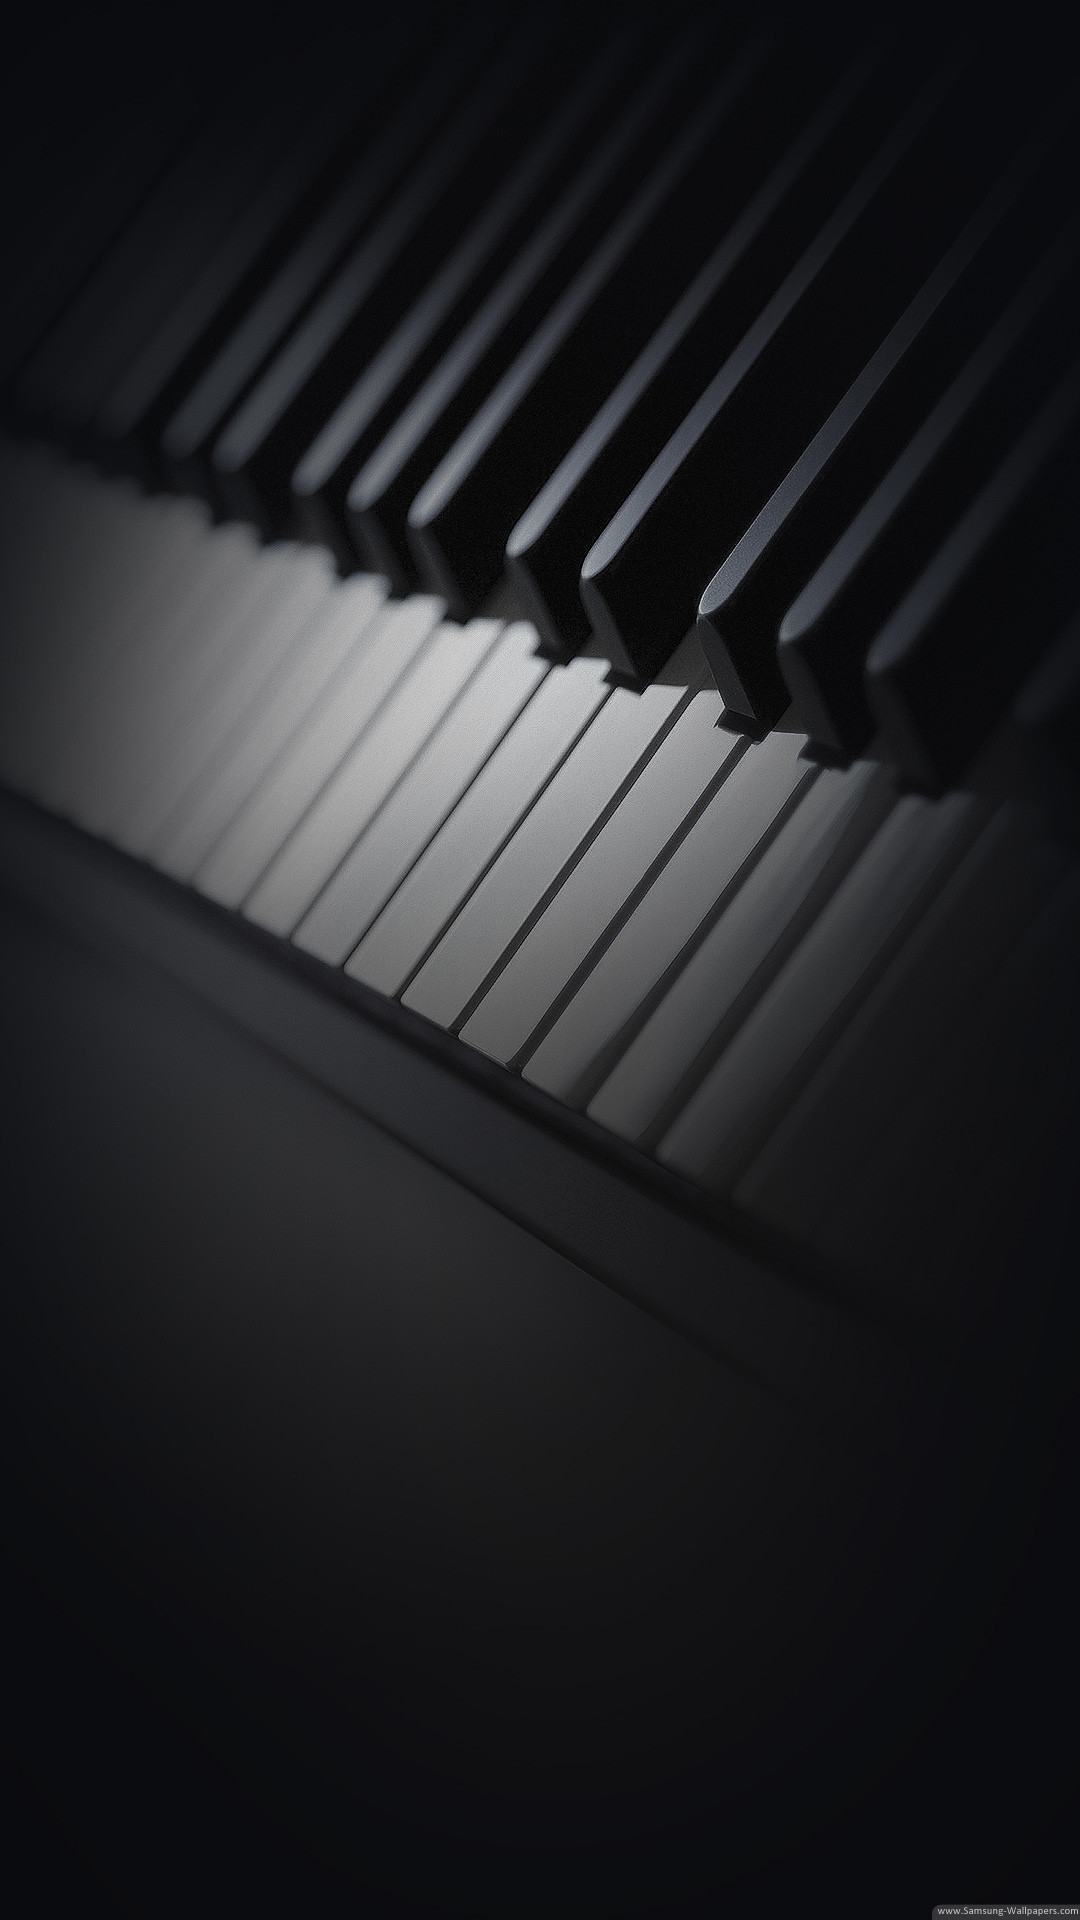 Piano hd wallpapers 78 images - Cool piano backgrounds ...